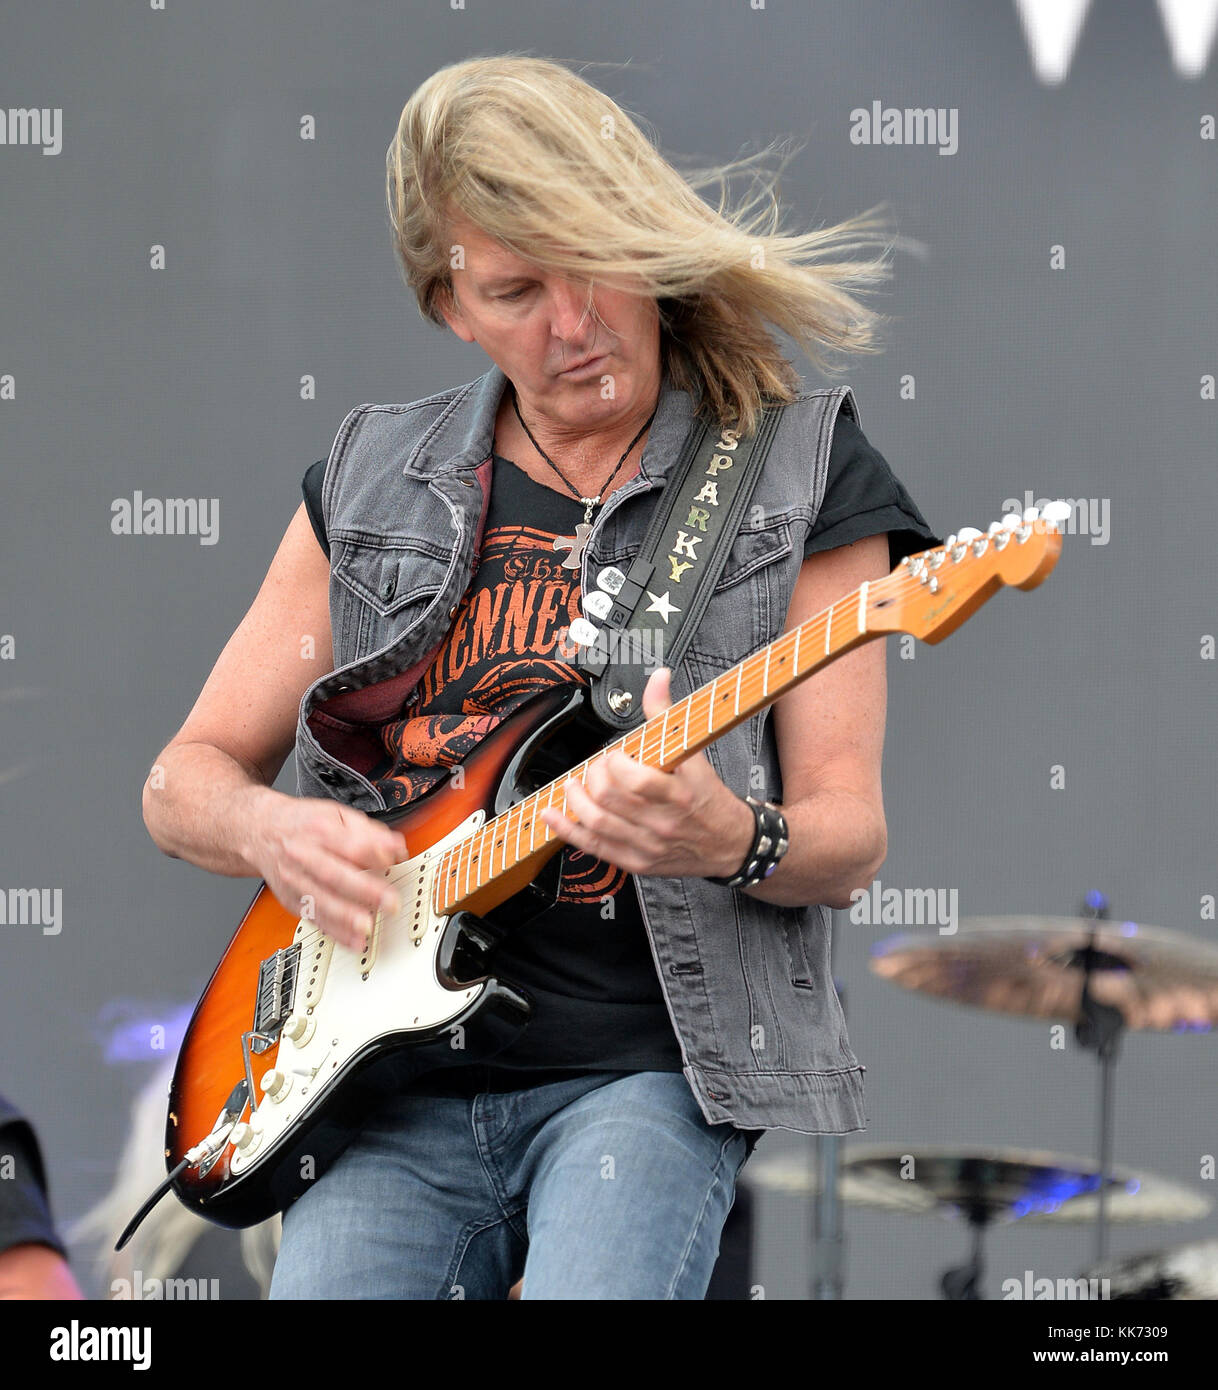 FORT LAUDERDALE, FL - APRIL 16: Mark Matejka of Lynyrd Skynyrd performs onstage during Tortuga Music Festival on Stock Photo